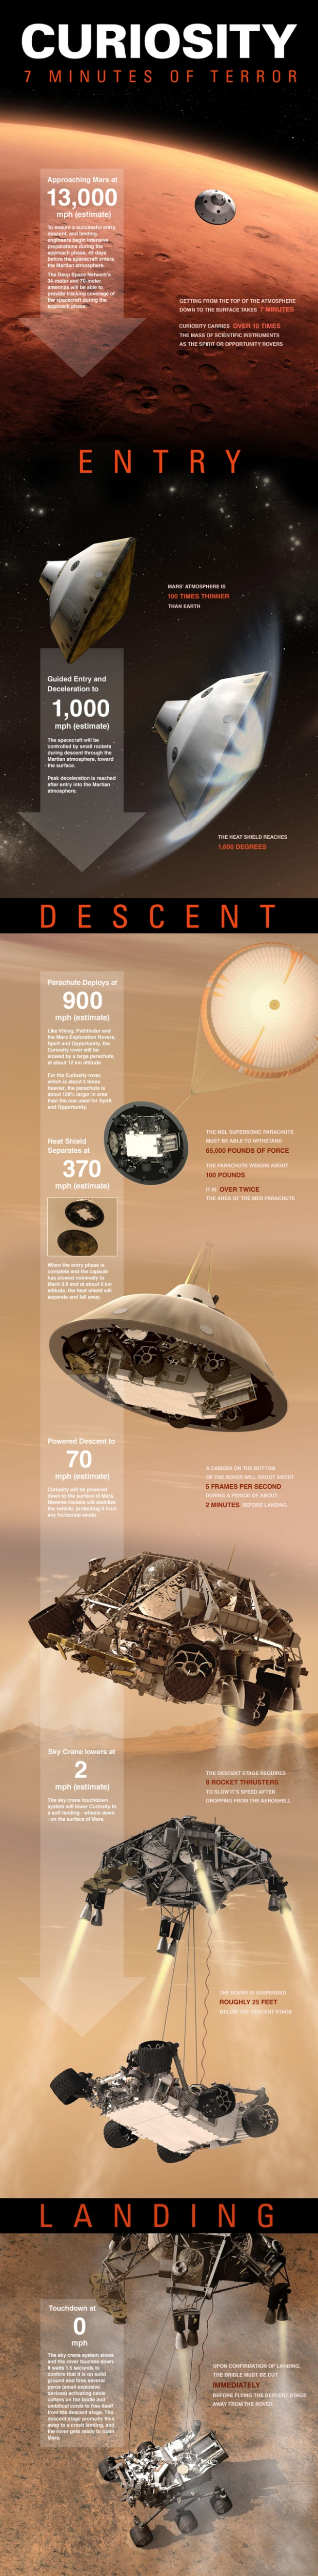 Curiosity mars rover infographic NASA SPACE